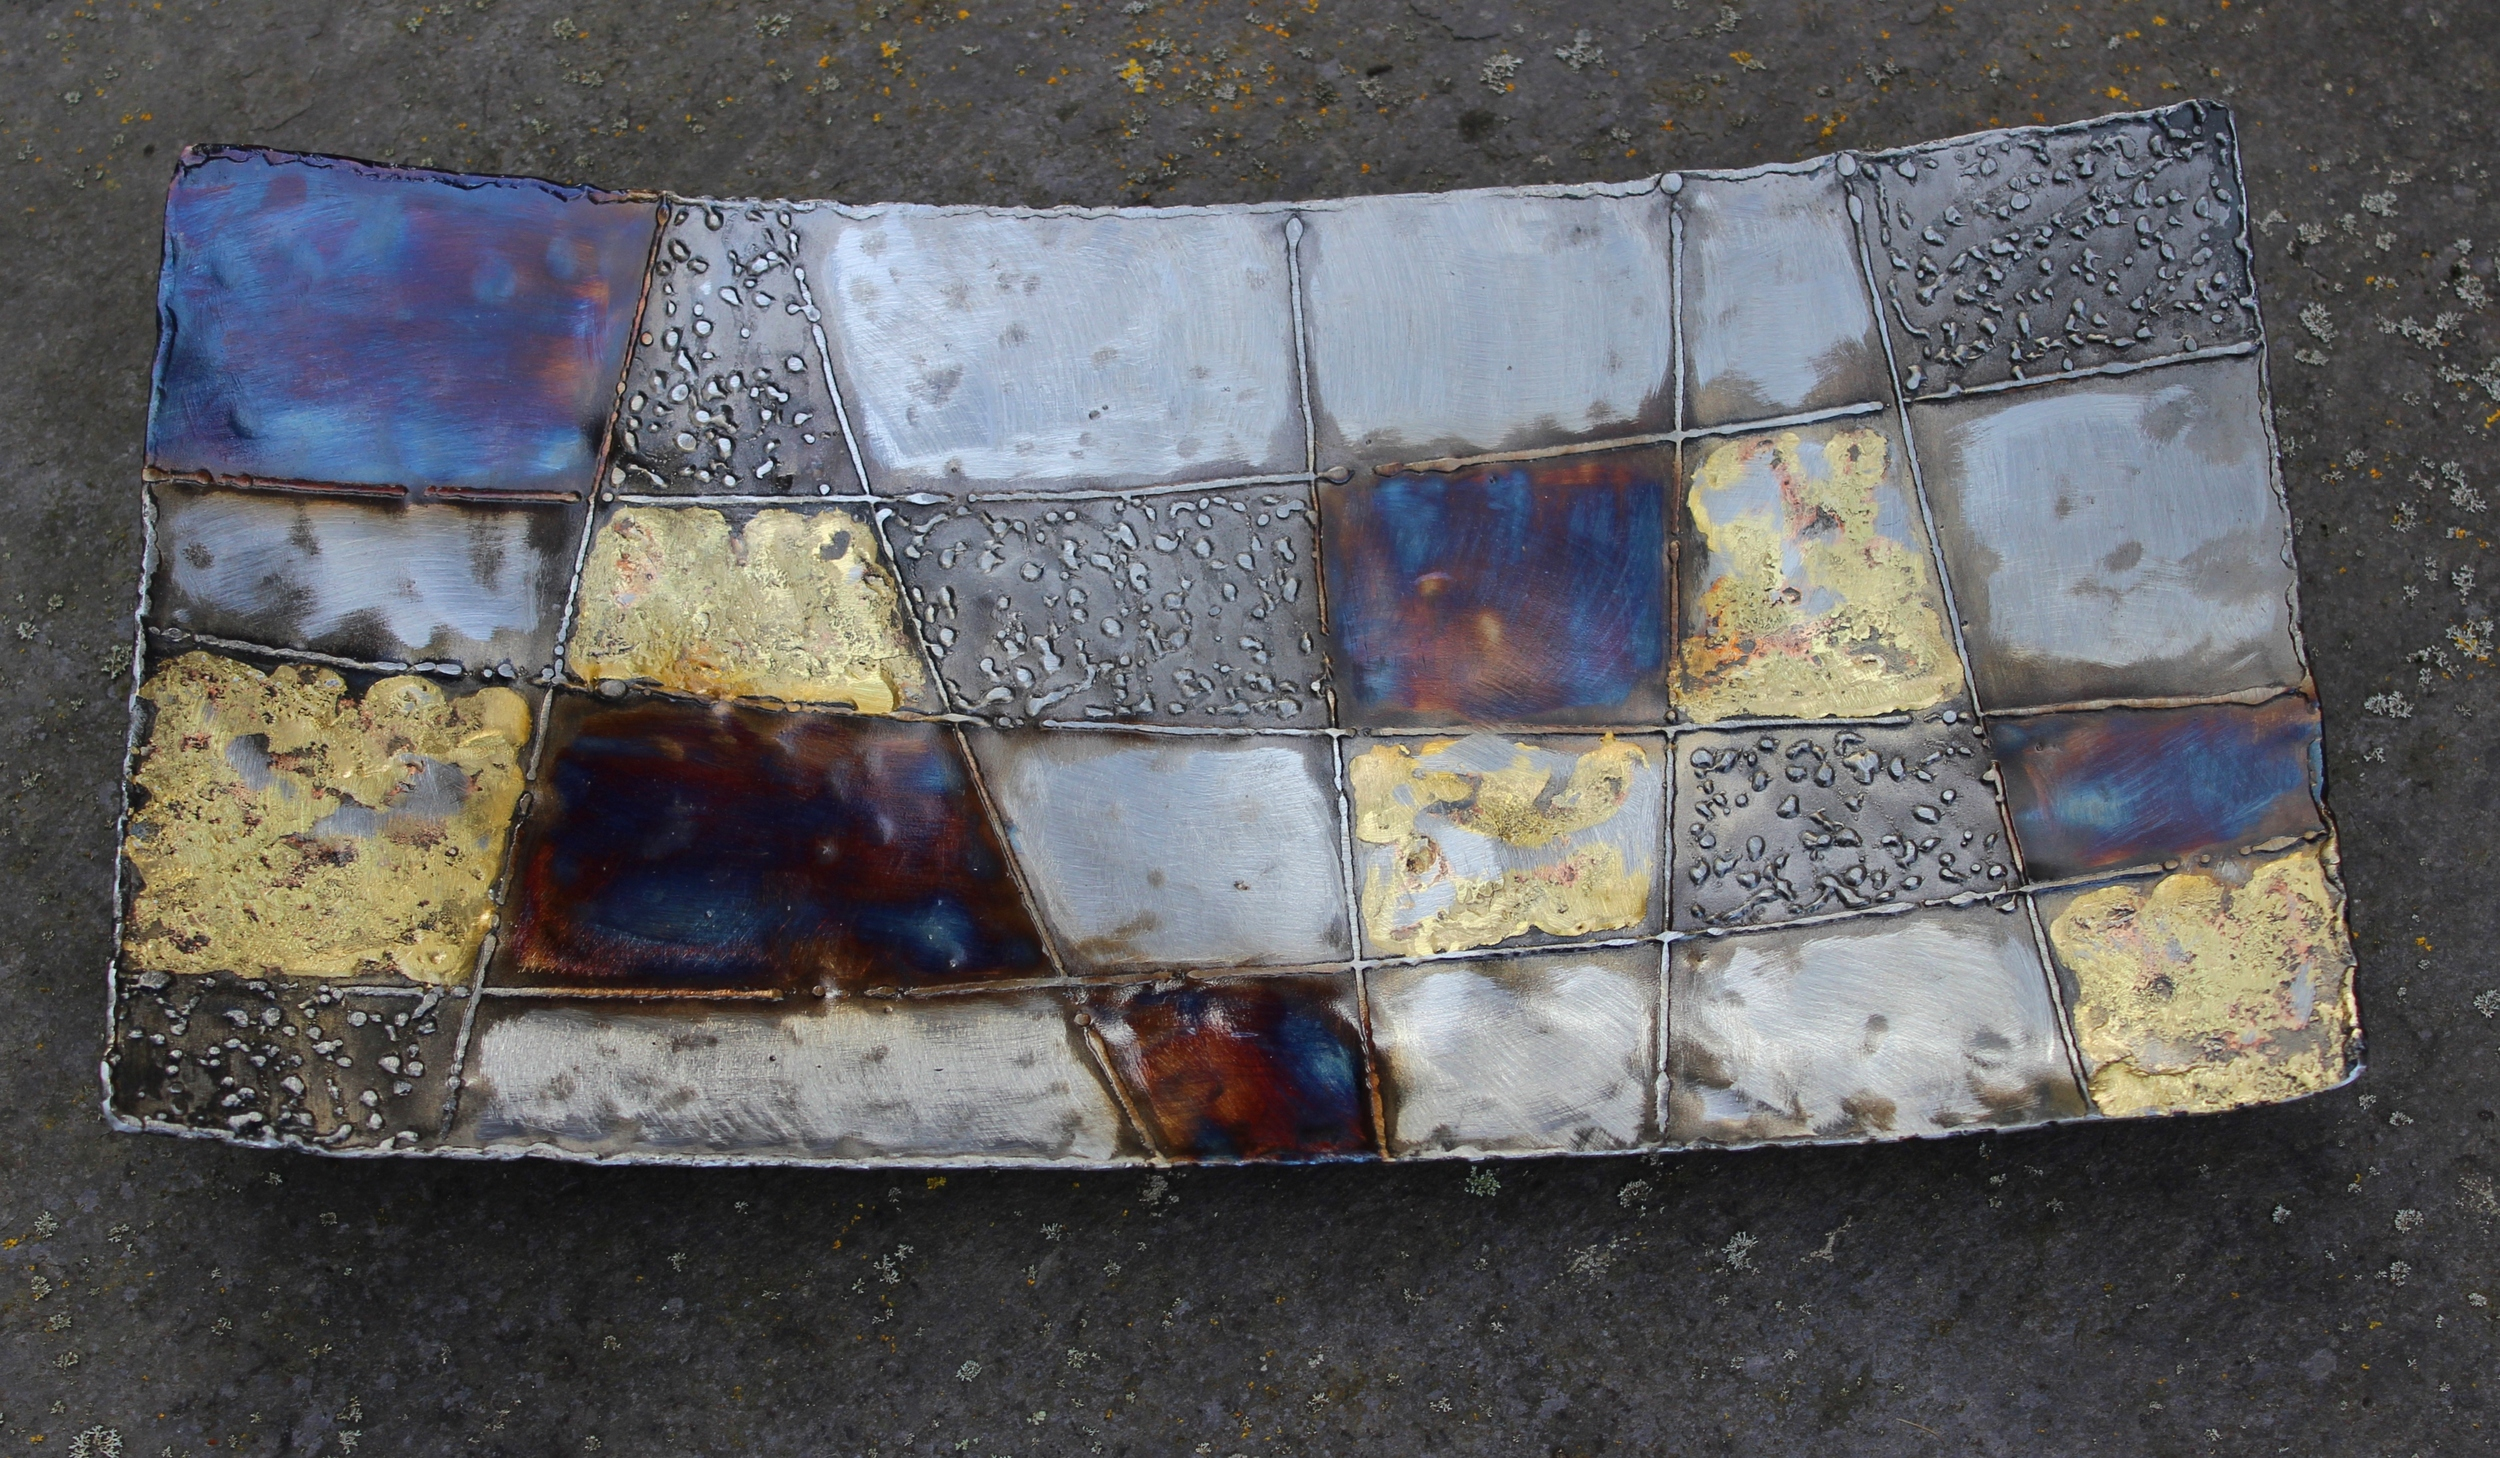 Iron / steel platter with bronze detail - from a selection starting at £69 each plus £20 insured p&p (UK mainland)